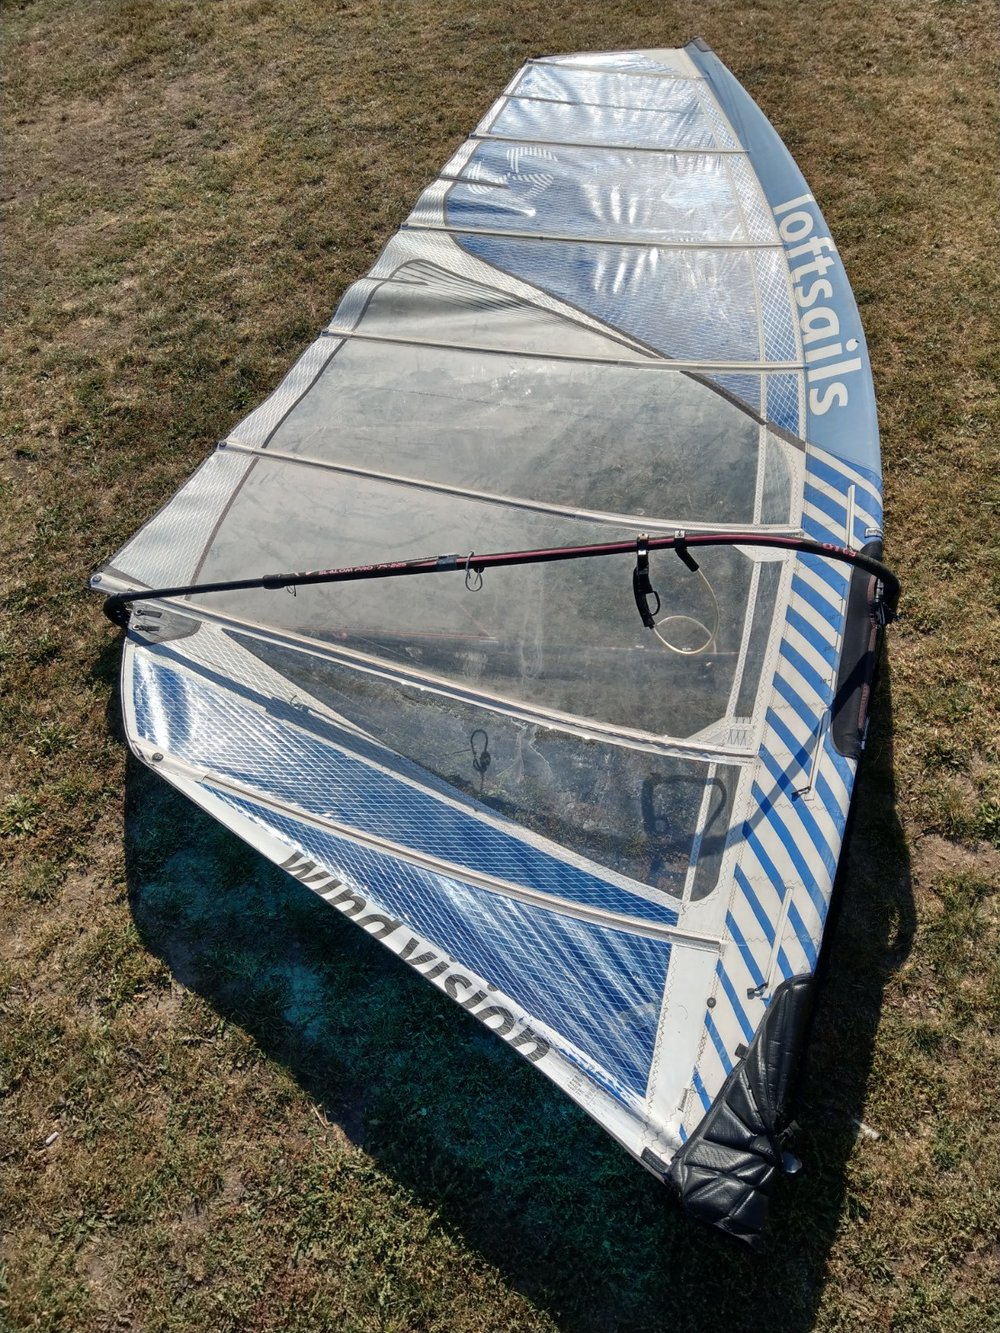 Loftsails switchblade 8.5